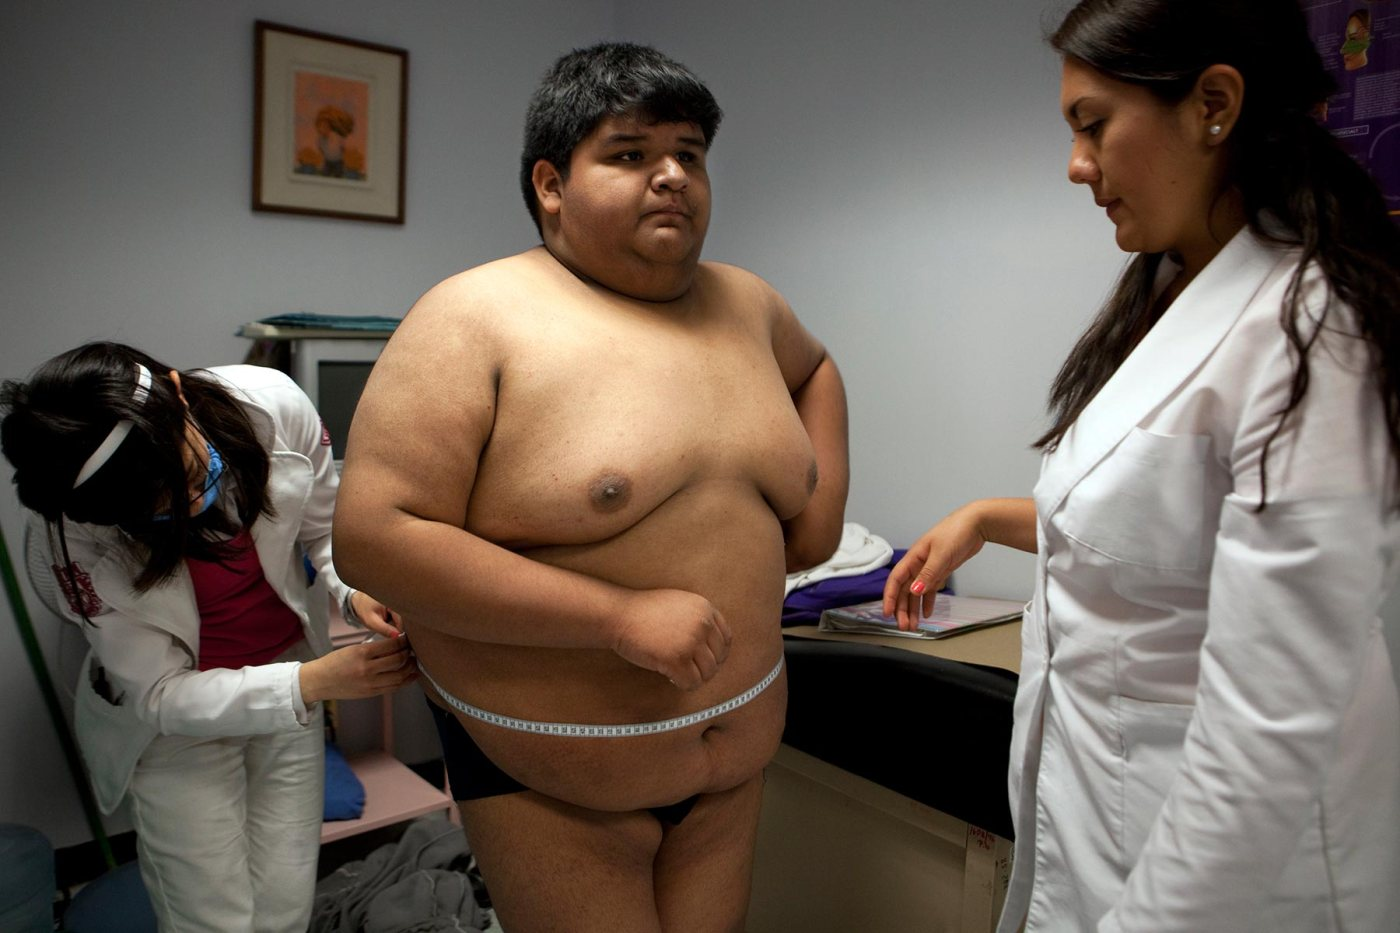 Childhood morbid obesity in Mexico